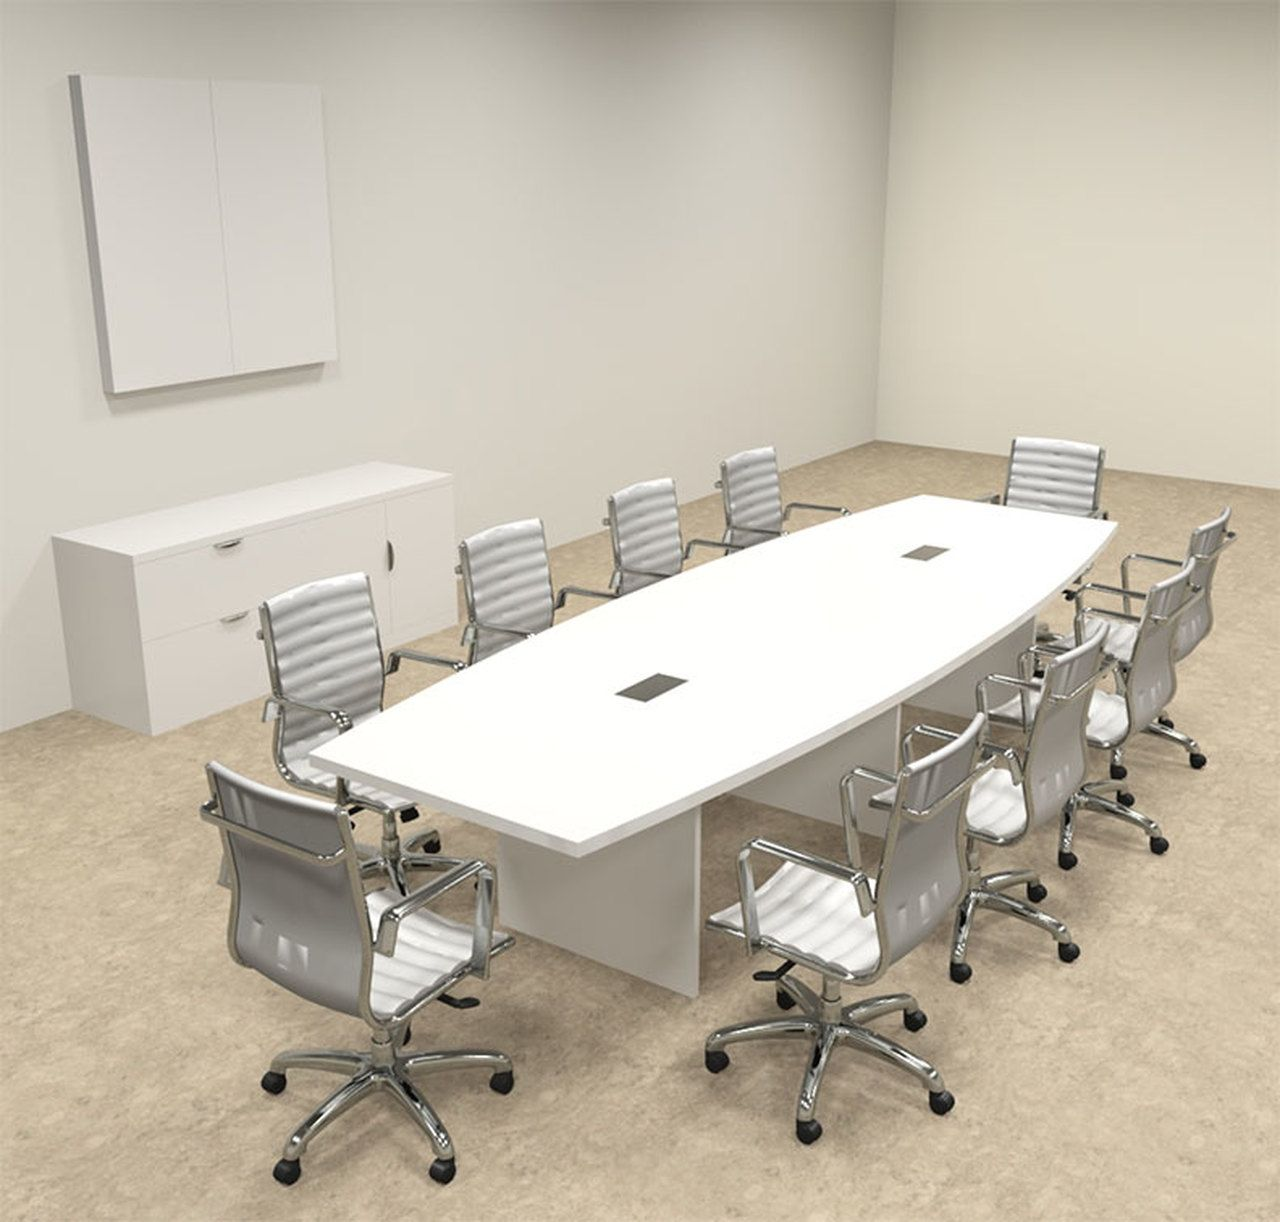 Modern Boat Shaped 12 Feet Conference Table Of Con C123 In 2020 Conference Table Office Furniture Design Table